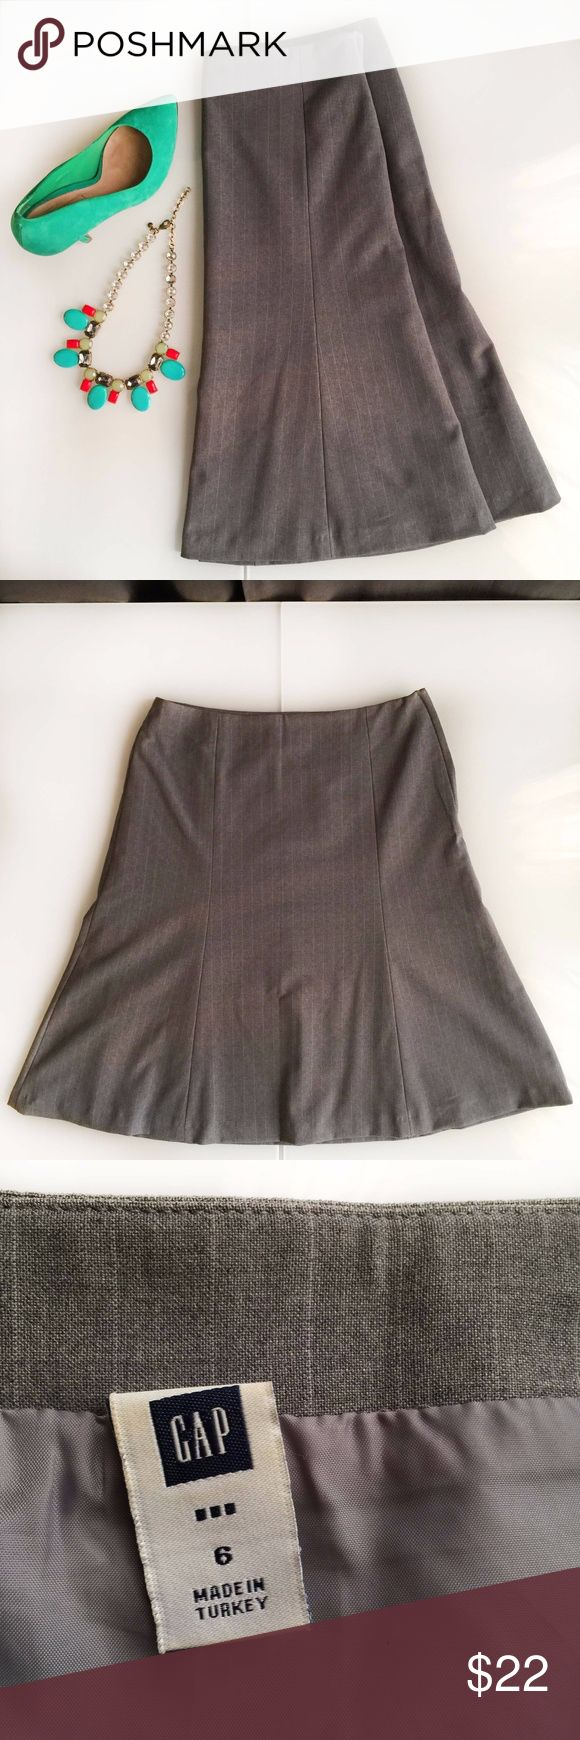 """Gap Pinstripe Grey Wool Skirt Gap Pinstripe Grey Skirt (light grey skinny vertical stripes)  Size 6 Fully lined Hidden side zipper A line  23.5"""" length 60% Wool, 36 polyester, 4% other fiber Excellent condition  I am also selling the awesome sea green/teal pumps by David Tutera. Message me for price.   All items come from an extremely clean and organized house - my mom taught me well!!  Smoke free. Pet free.  No trades please GAP Skirts A-Line or Full"""